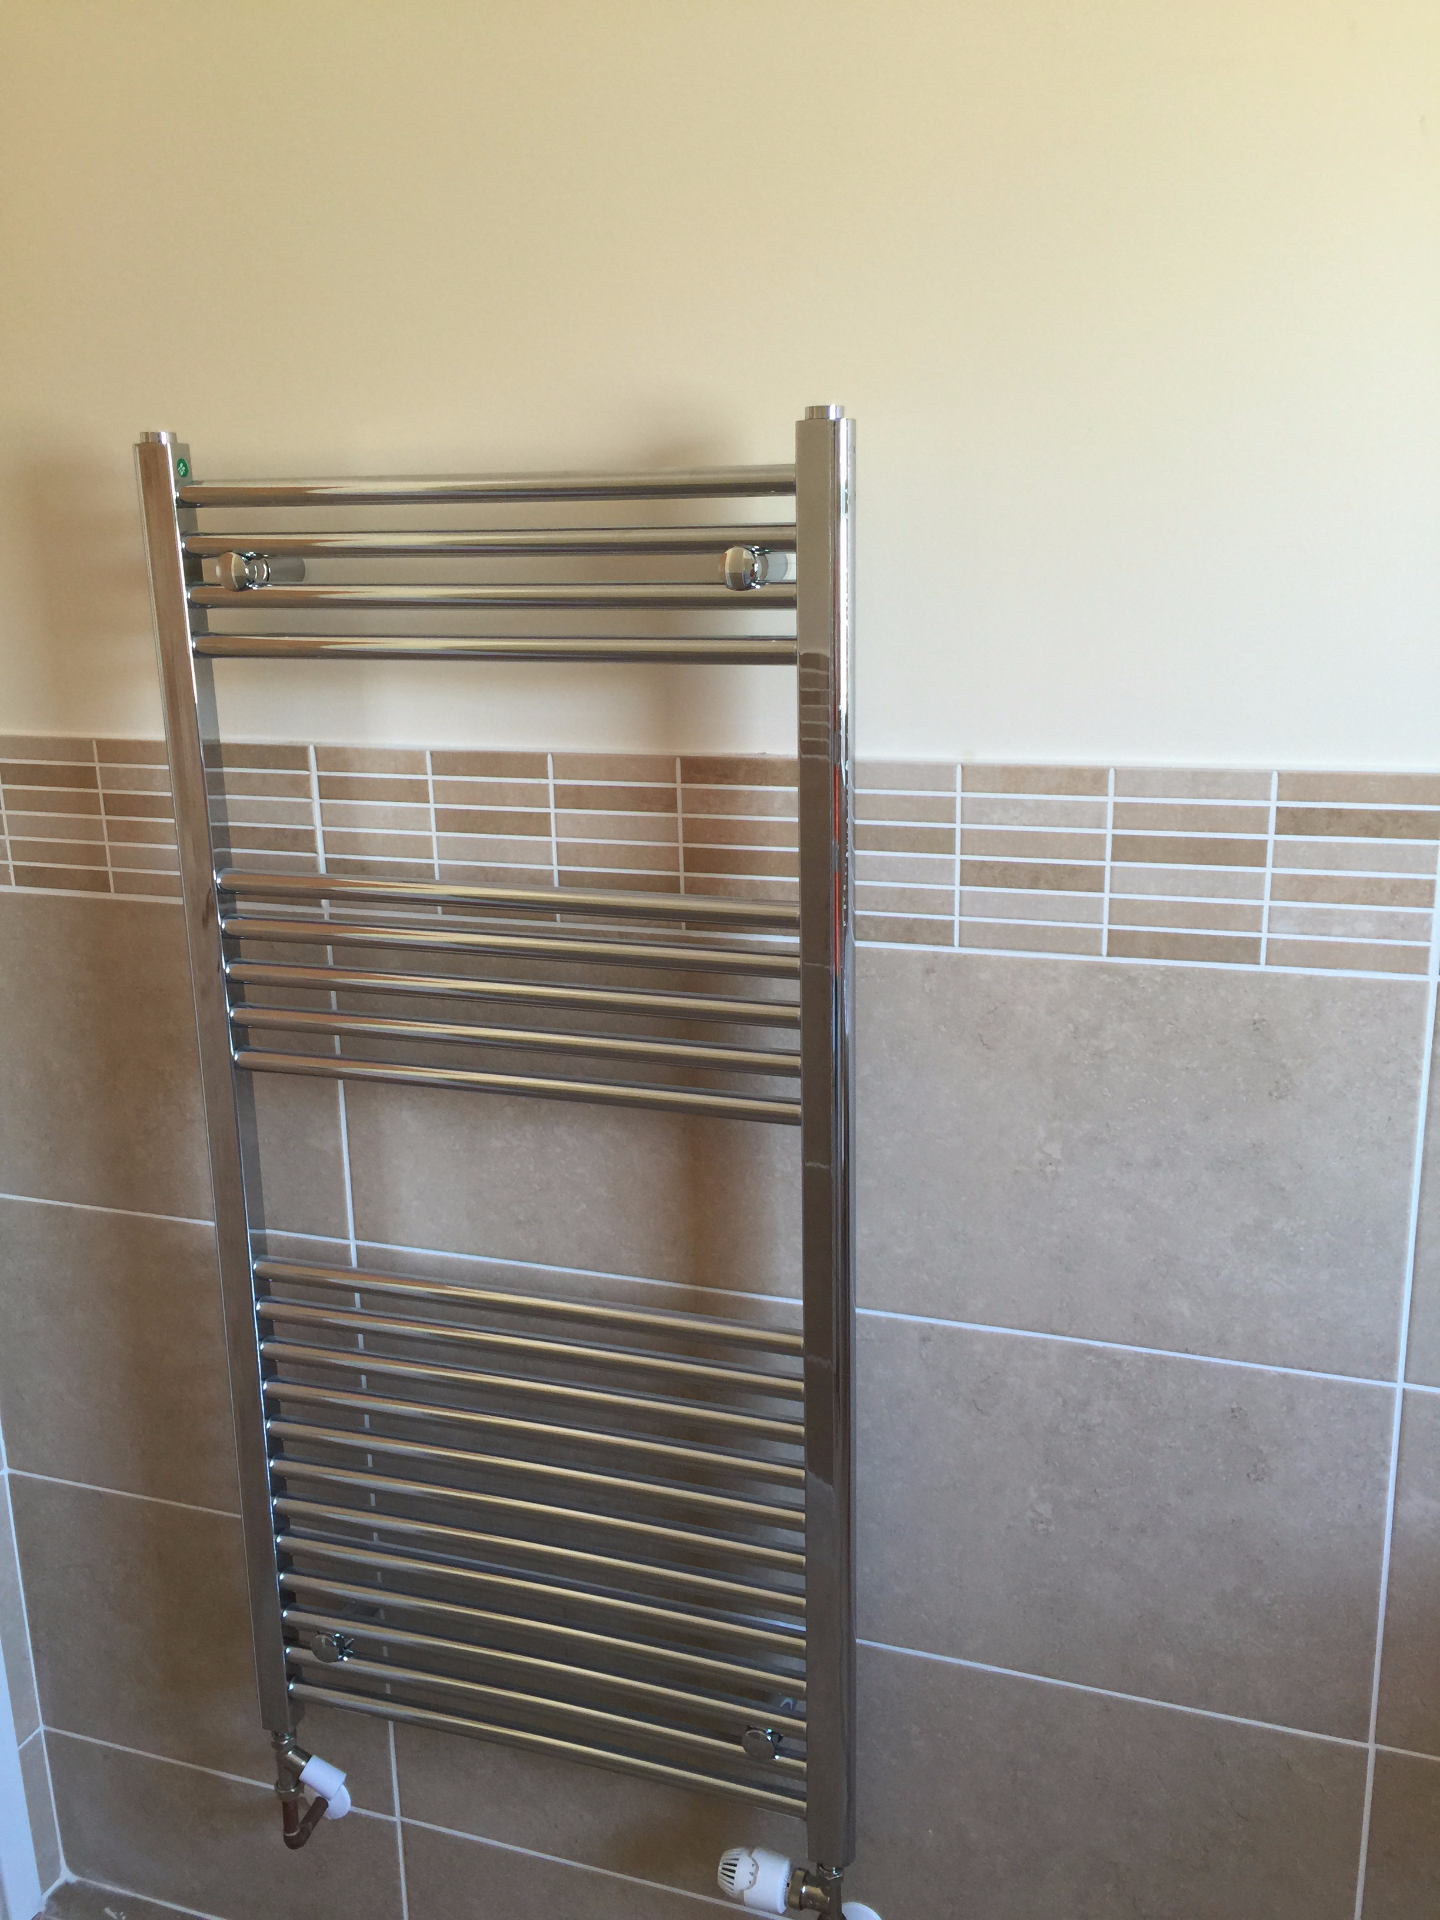 Small towel rail